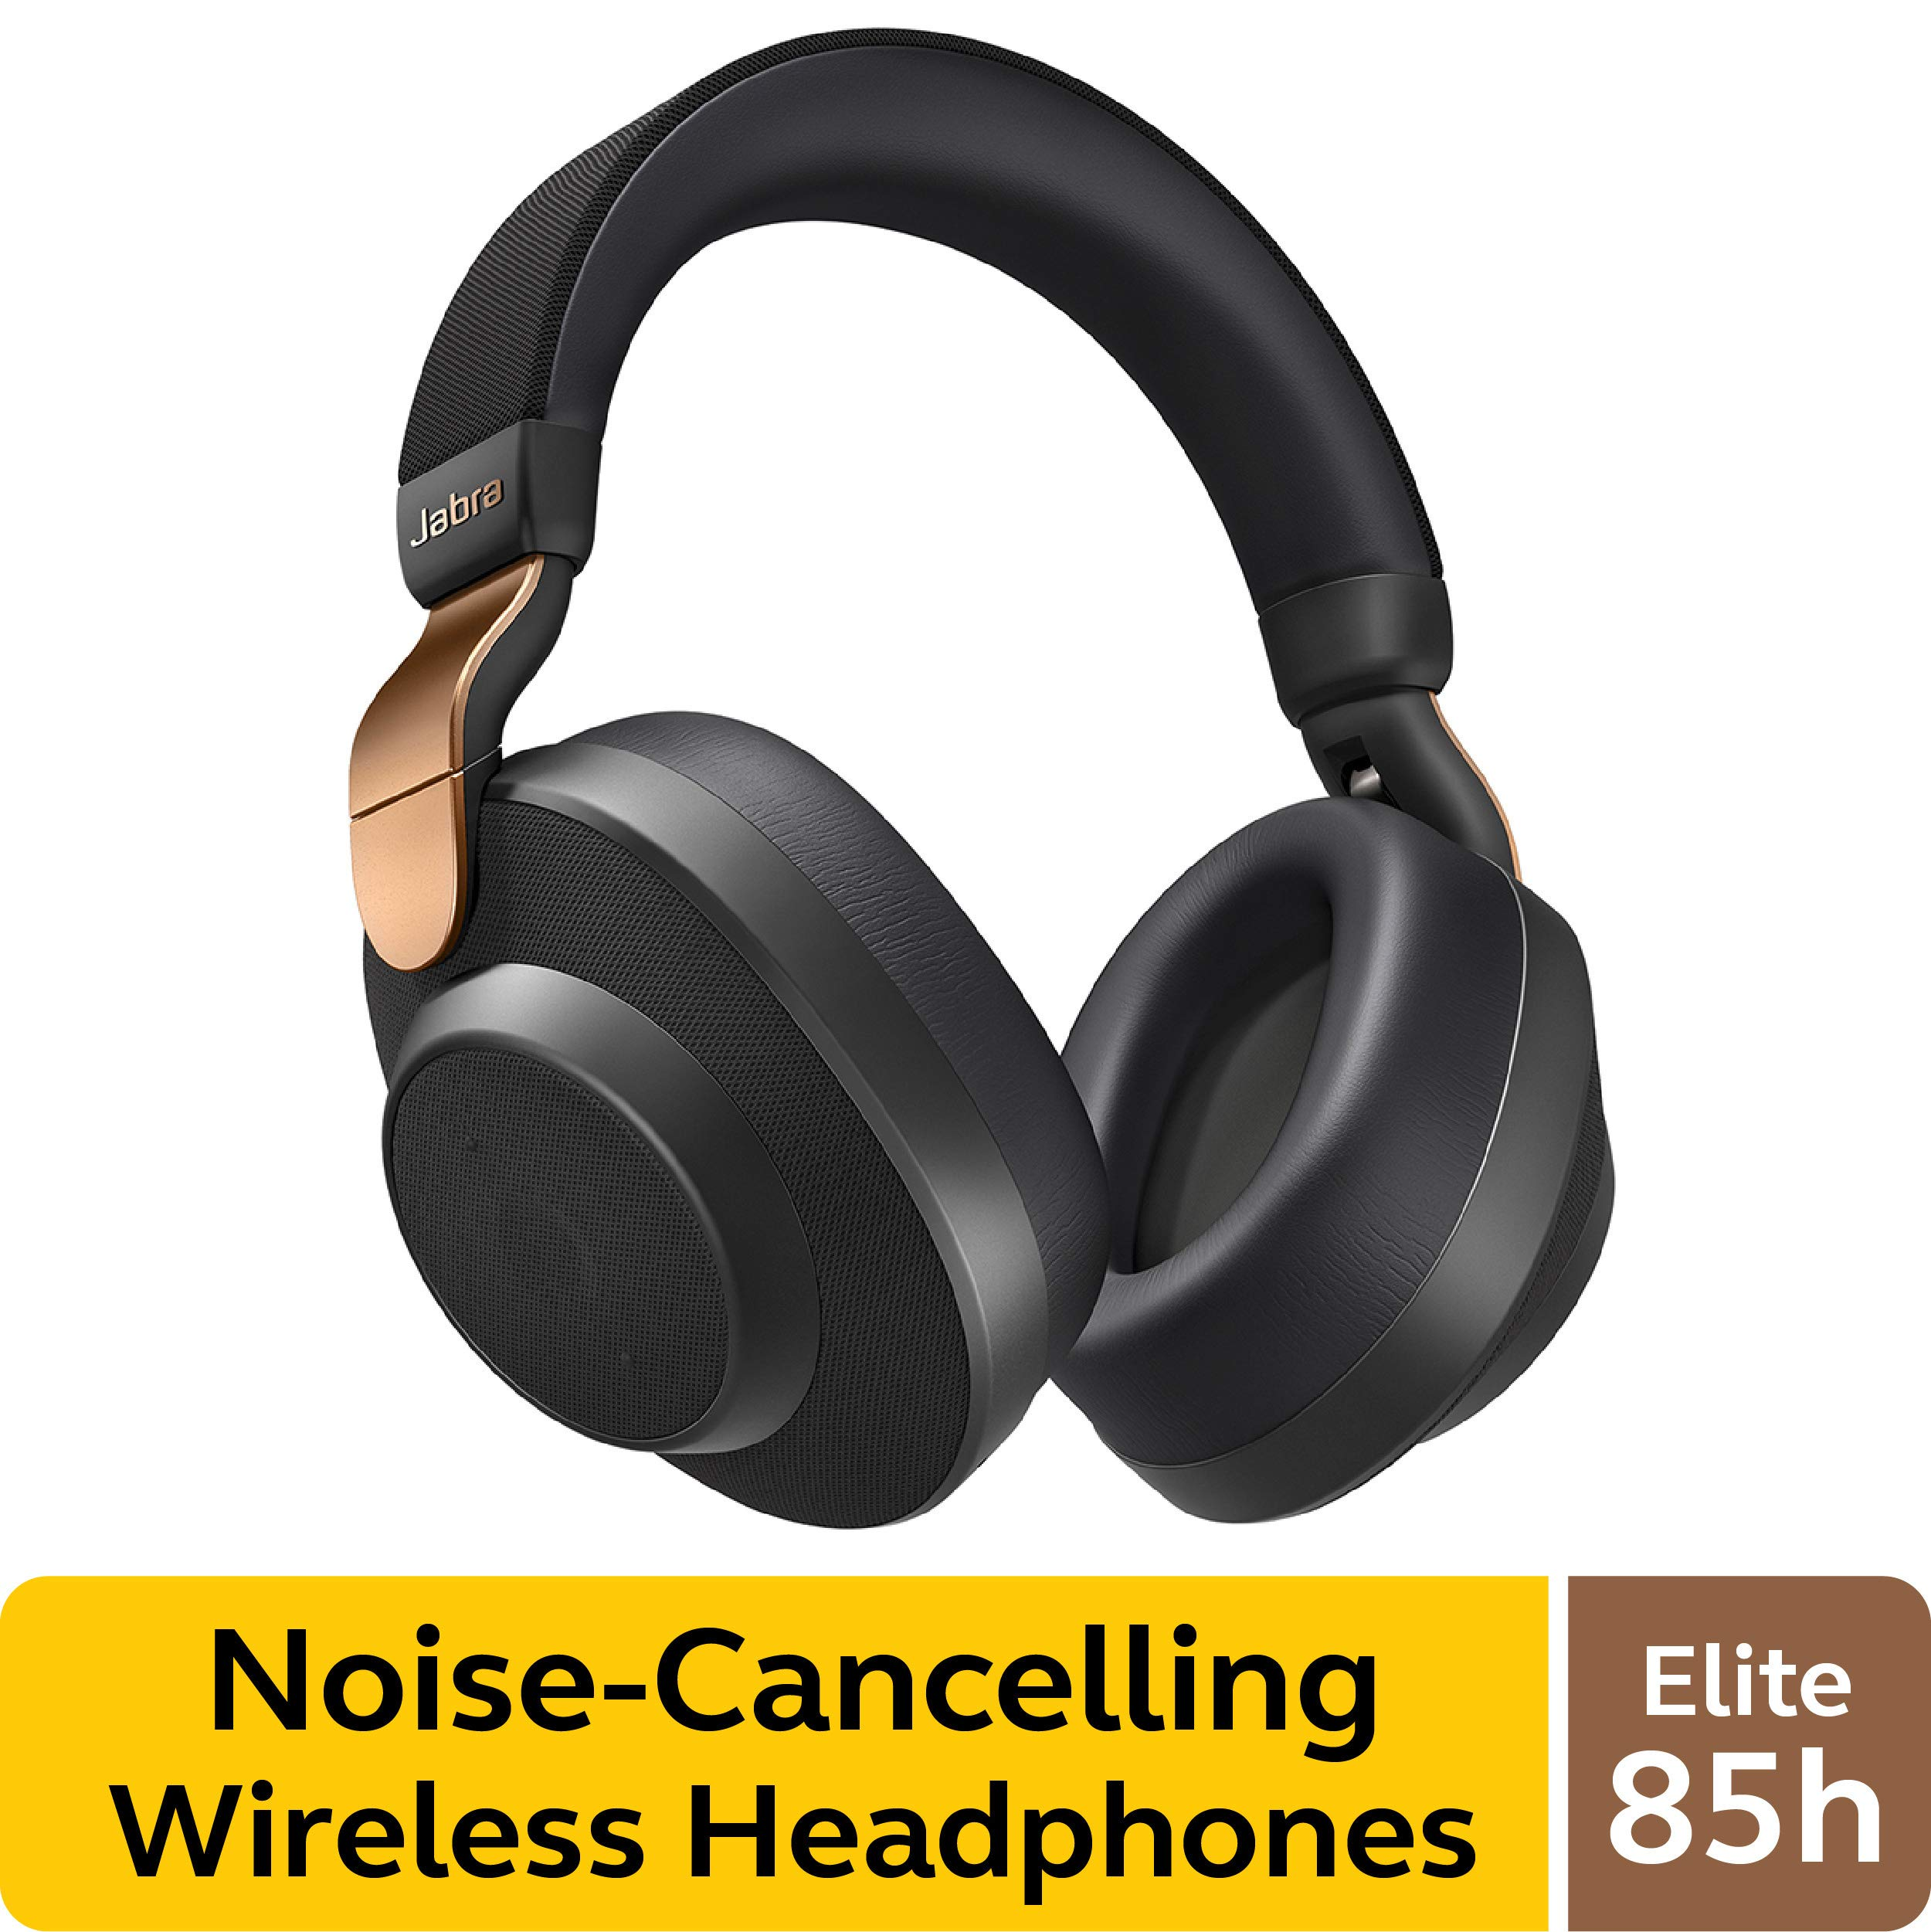 Jabra Elite 85h Wireless Noise-Canceling Headphones, Copper Black - Over Ear Bluetooth Headphones Compatible with iPhone & Android - Built-in Microphone, Long Battery Life - Rain & Water Resistant by Jabra